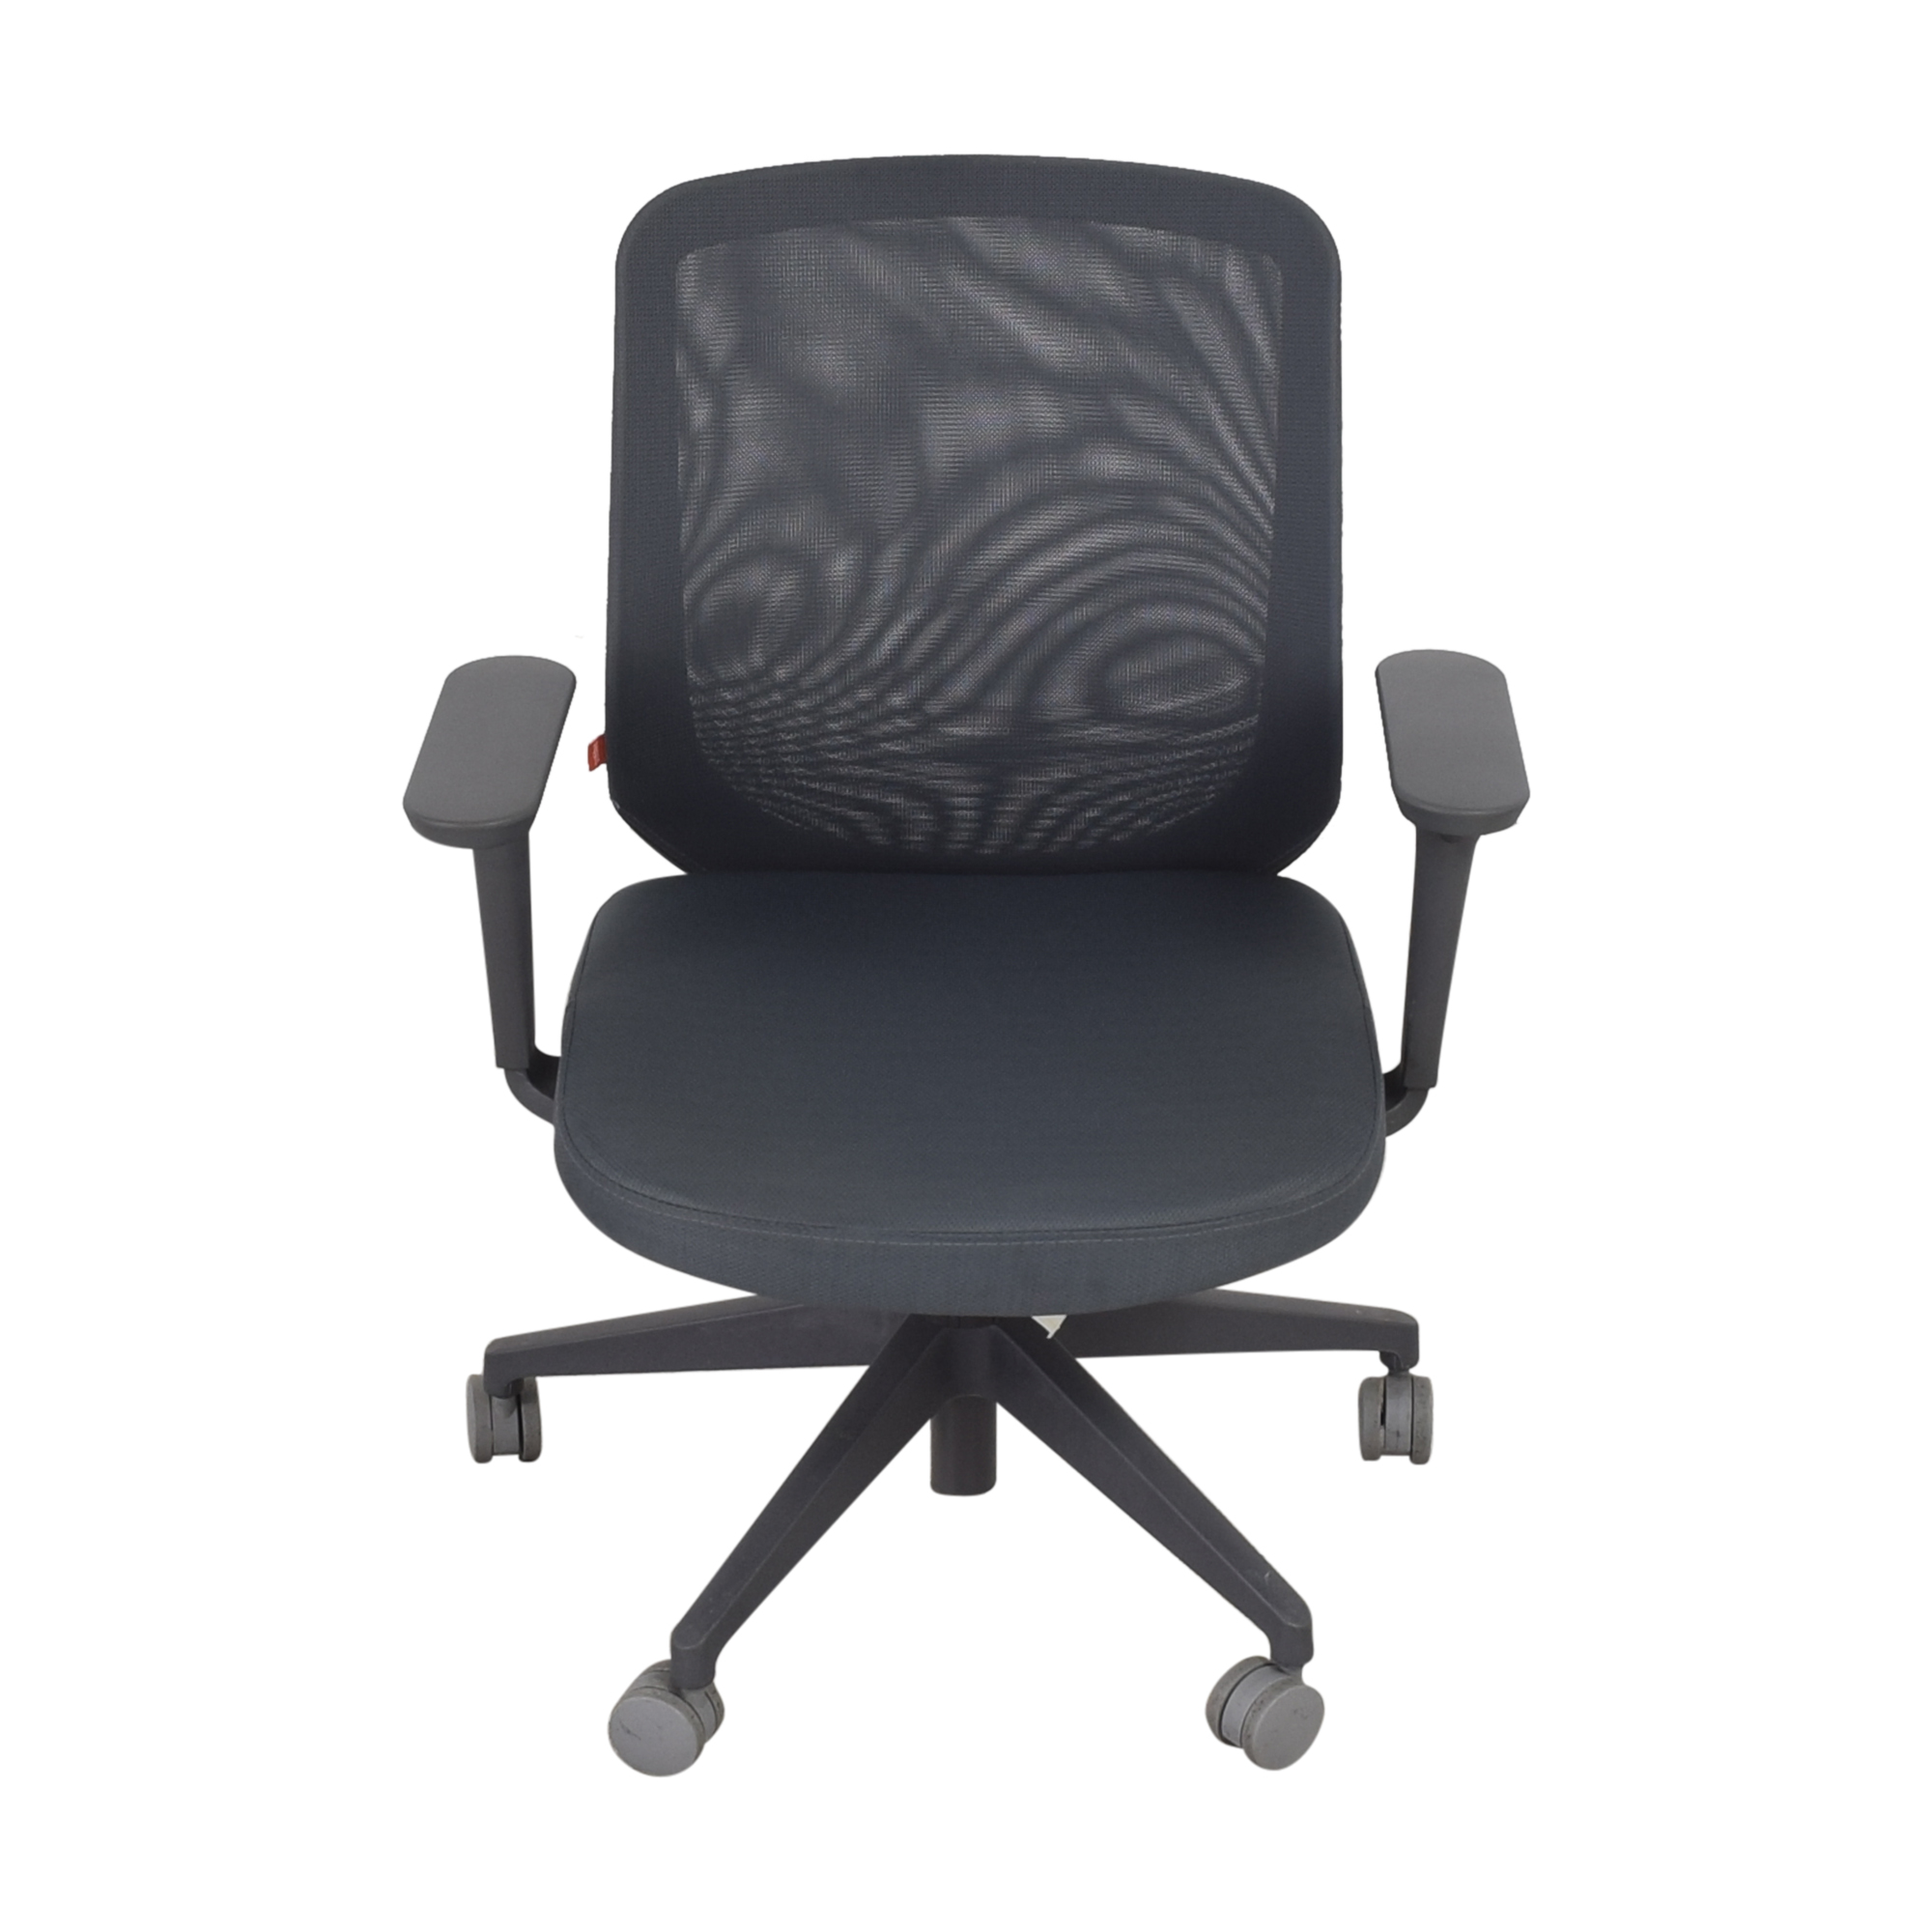 Poppin Poppin Max Task Chair coupon